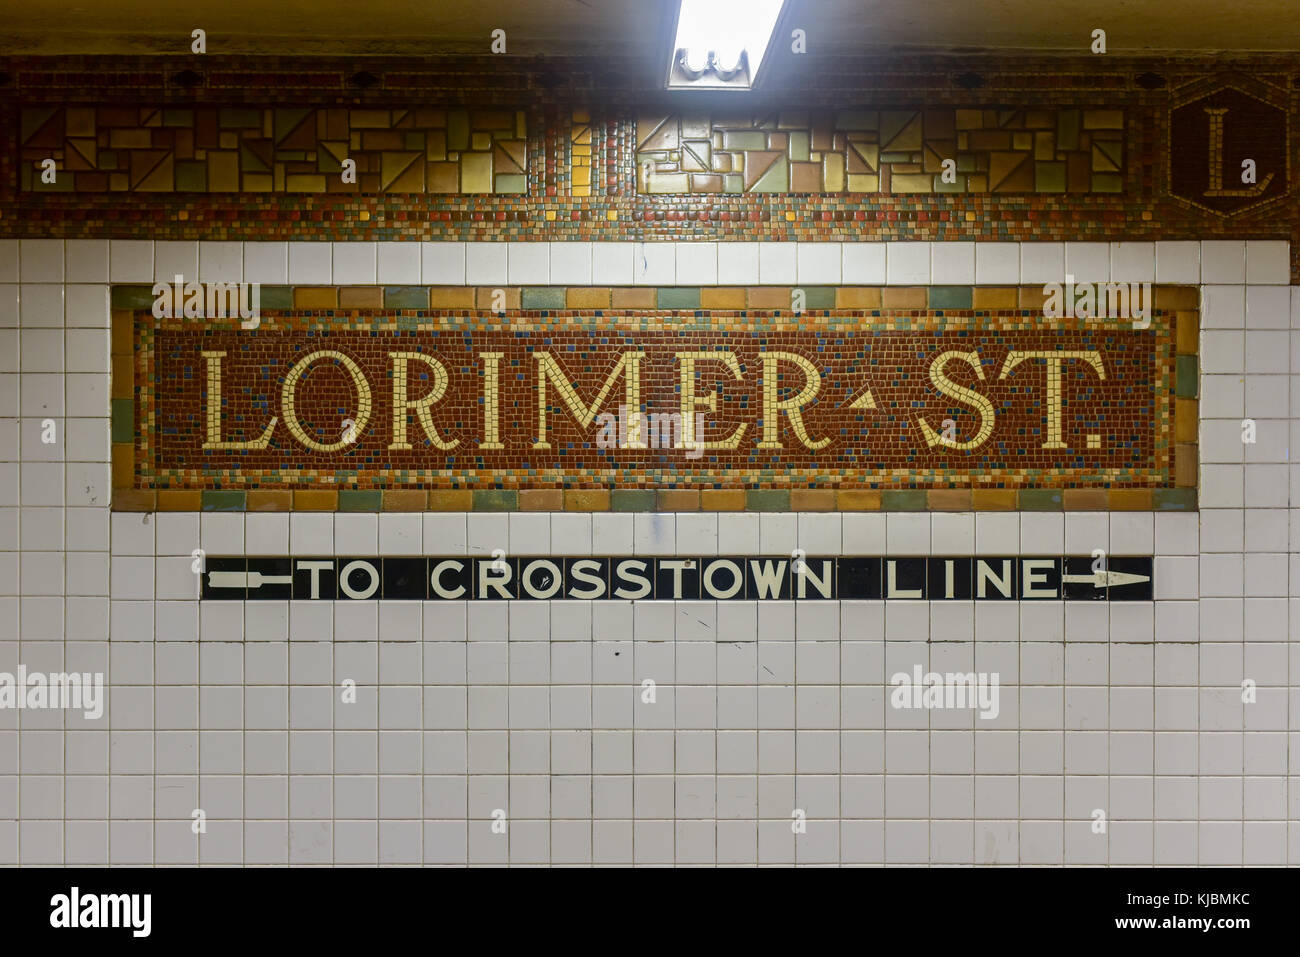 Lorimer Stock Photos Images Alamy Gamis Onthel Series Brooklyn New York October 22 2015 Street Subway Station Sign On